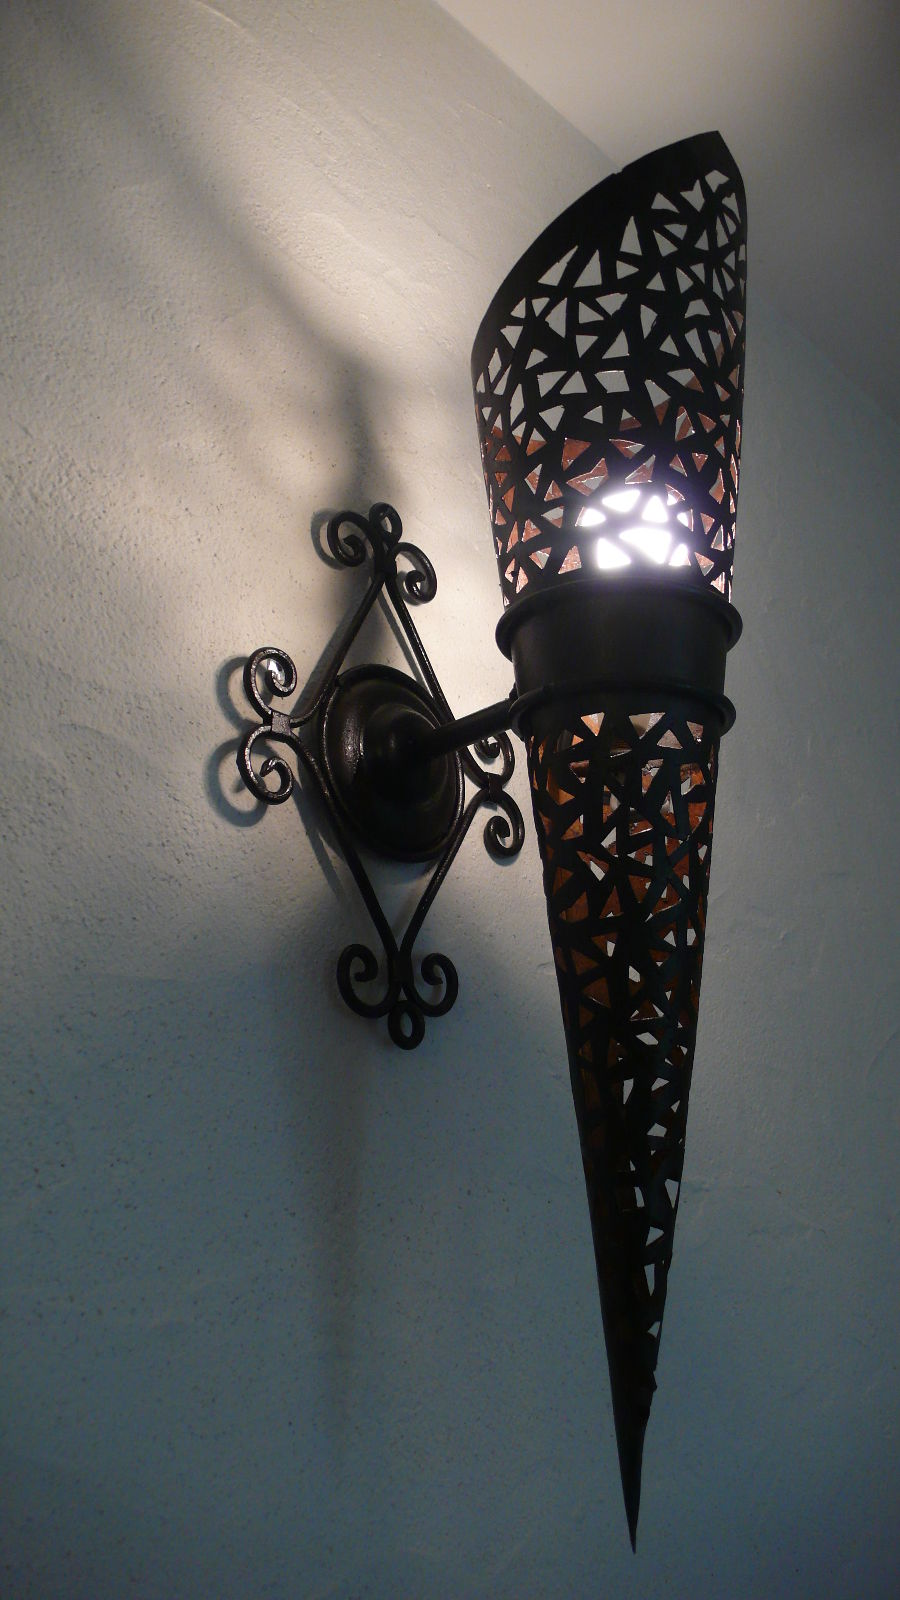 Moroccan wall lights 10 ways to get an indication of culture and moroccan wall lights 10 ways to get an indication of culture and magnificence to your home aloadofball Choice Image